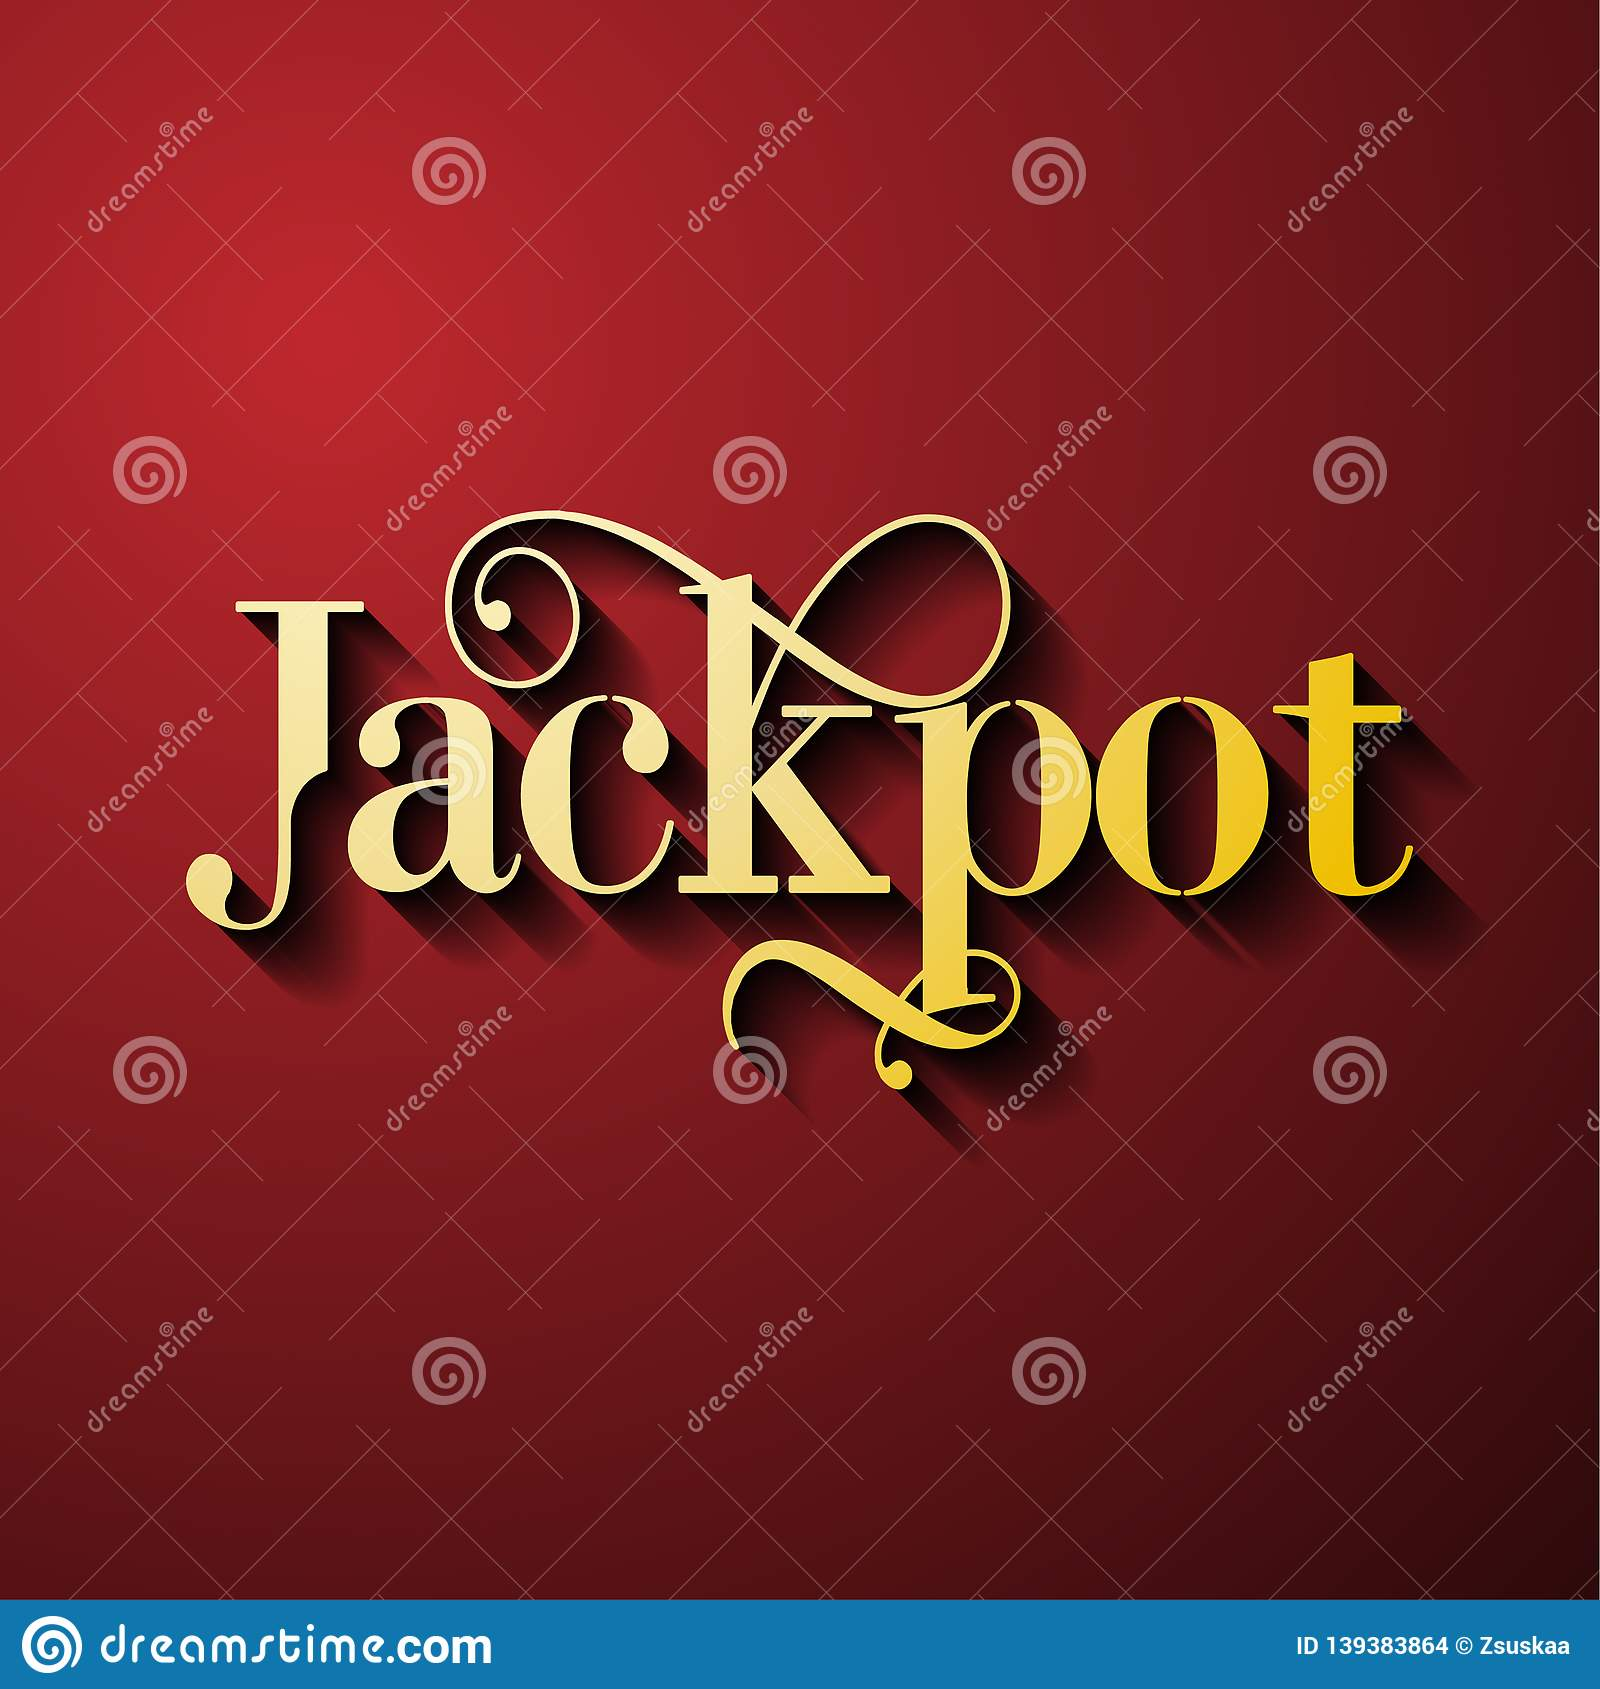 Jackpot - gambling game bright banner with winning.